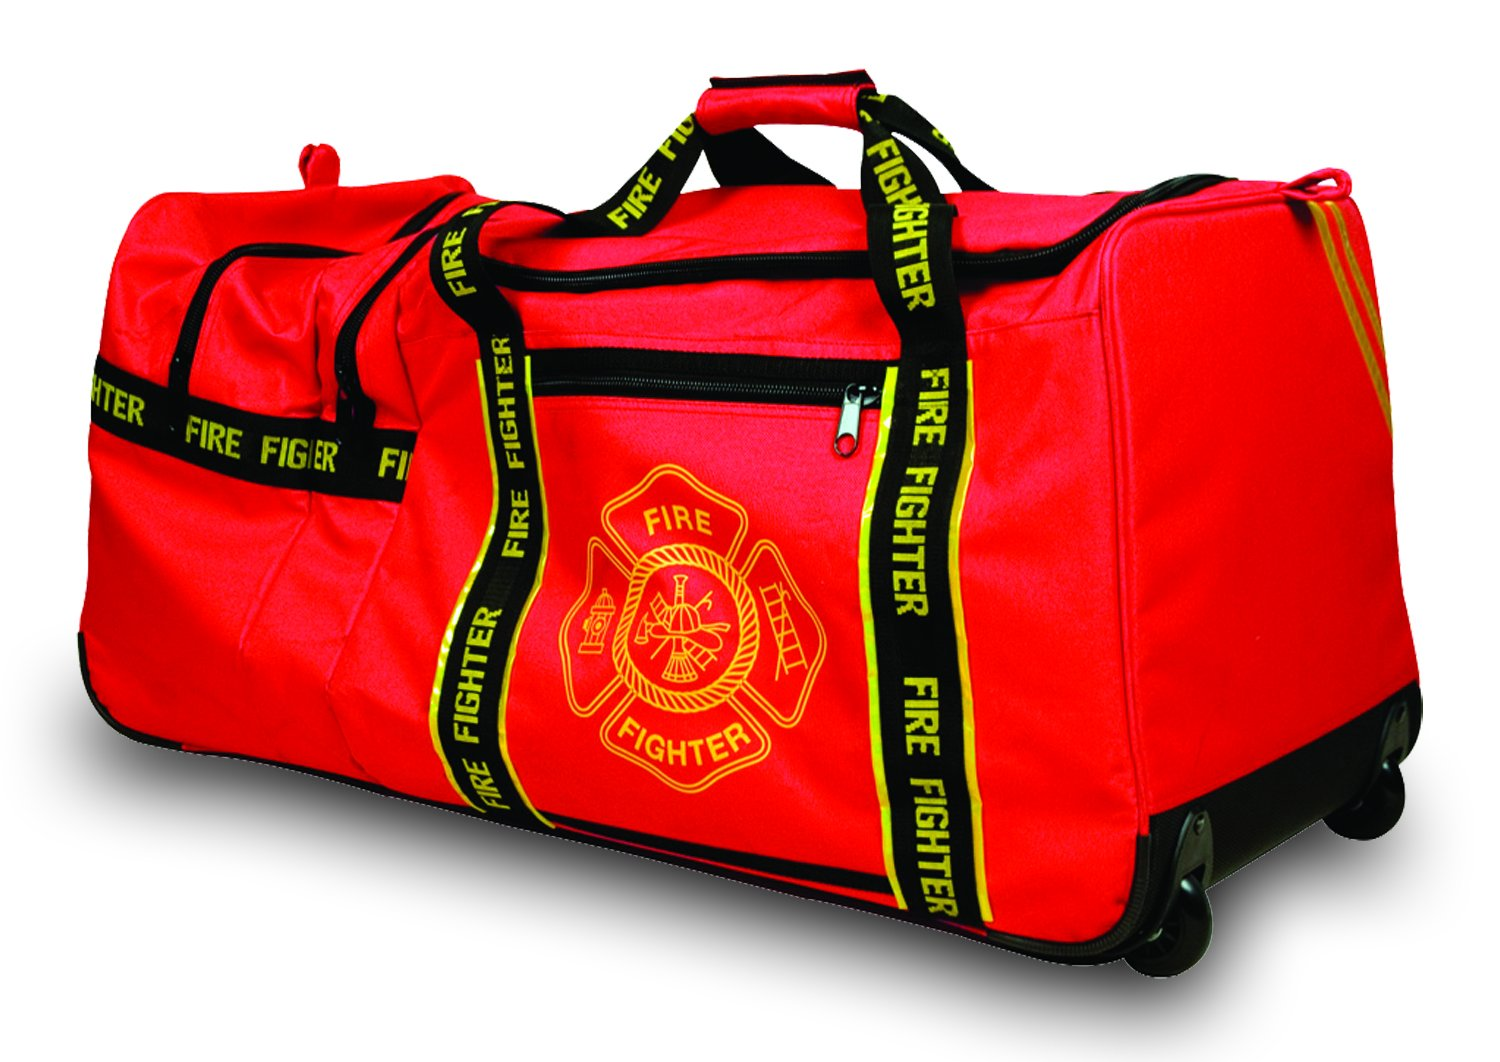 """Red 3 Compartments with 2 Outside Zip Pockets /""""Firefighter/"""" Woven In Reflective Trim Along Bag Straps 29/"""" x 17/"""" x 16/"""" OccuNomix OK-3000 Large Gear Bag Maltese Cross Logo"""